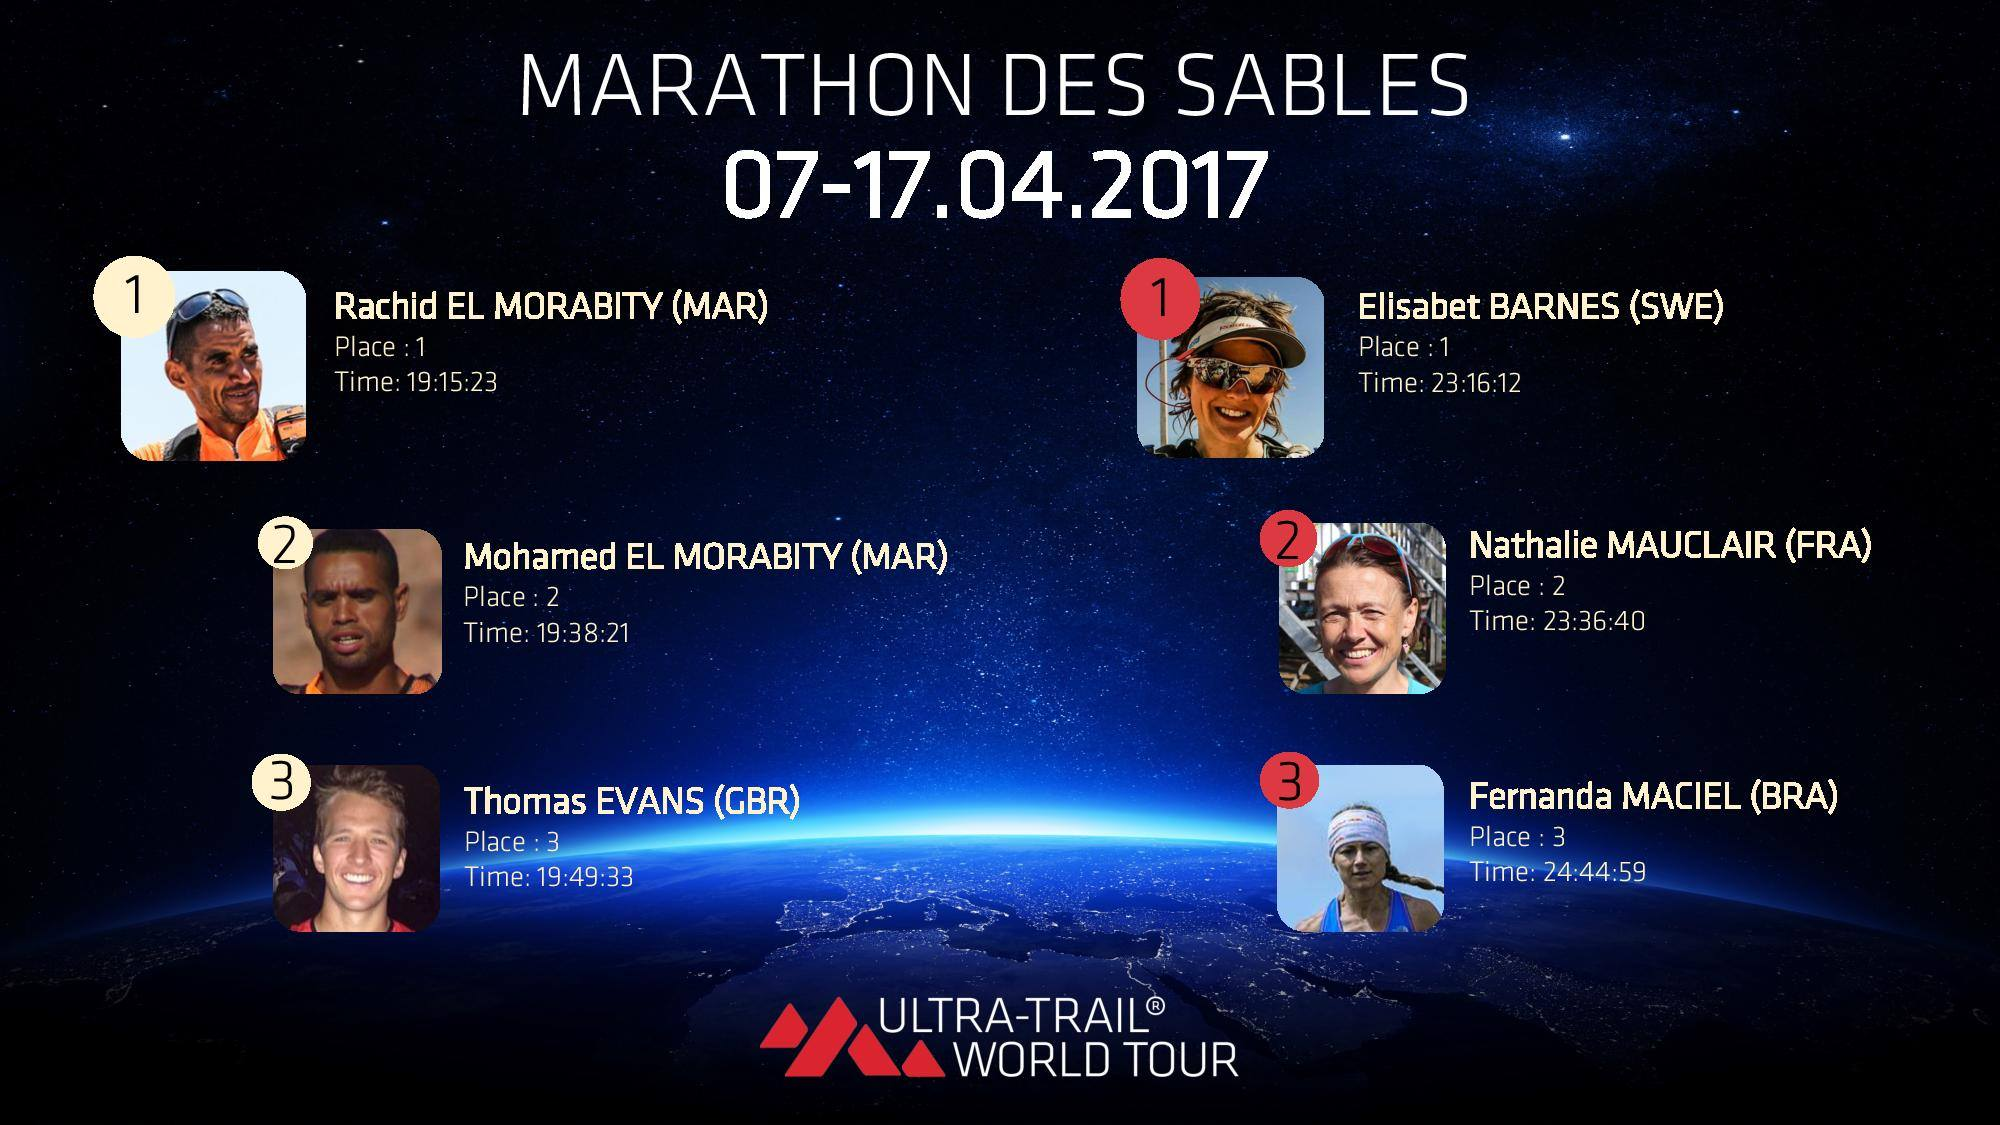 17973468 767829536718194 4858903931805174668 o - RESULTATS, PHOTOS ET VIDEO DU MARATHON DES SABLES 17-04-2017